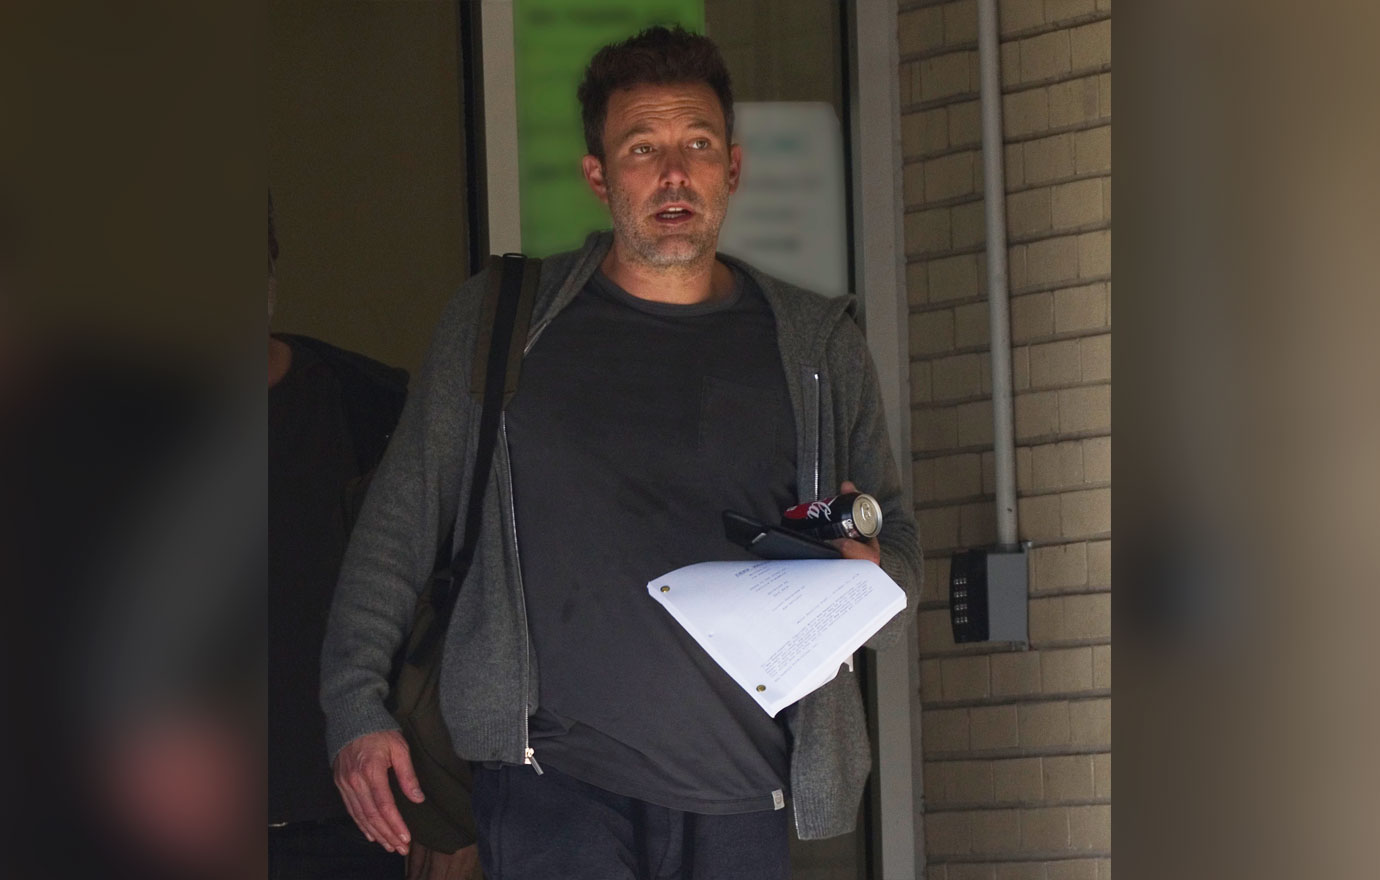 EXCLUSIVE: Ben Affleck looks scruffy and disheveled on his first day back at work after 'falling off the wagon' at a drunken Halloween party